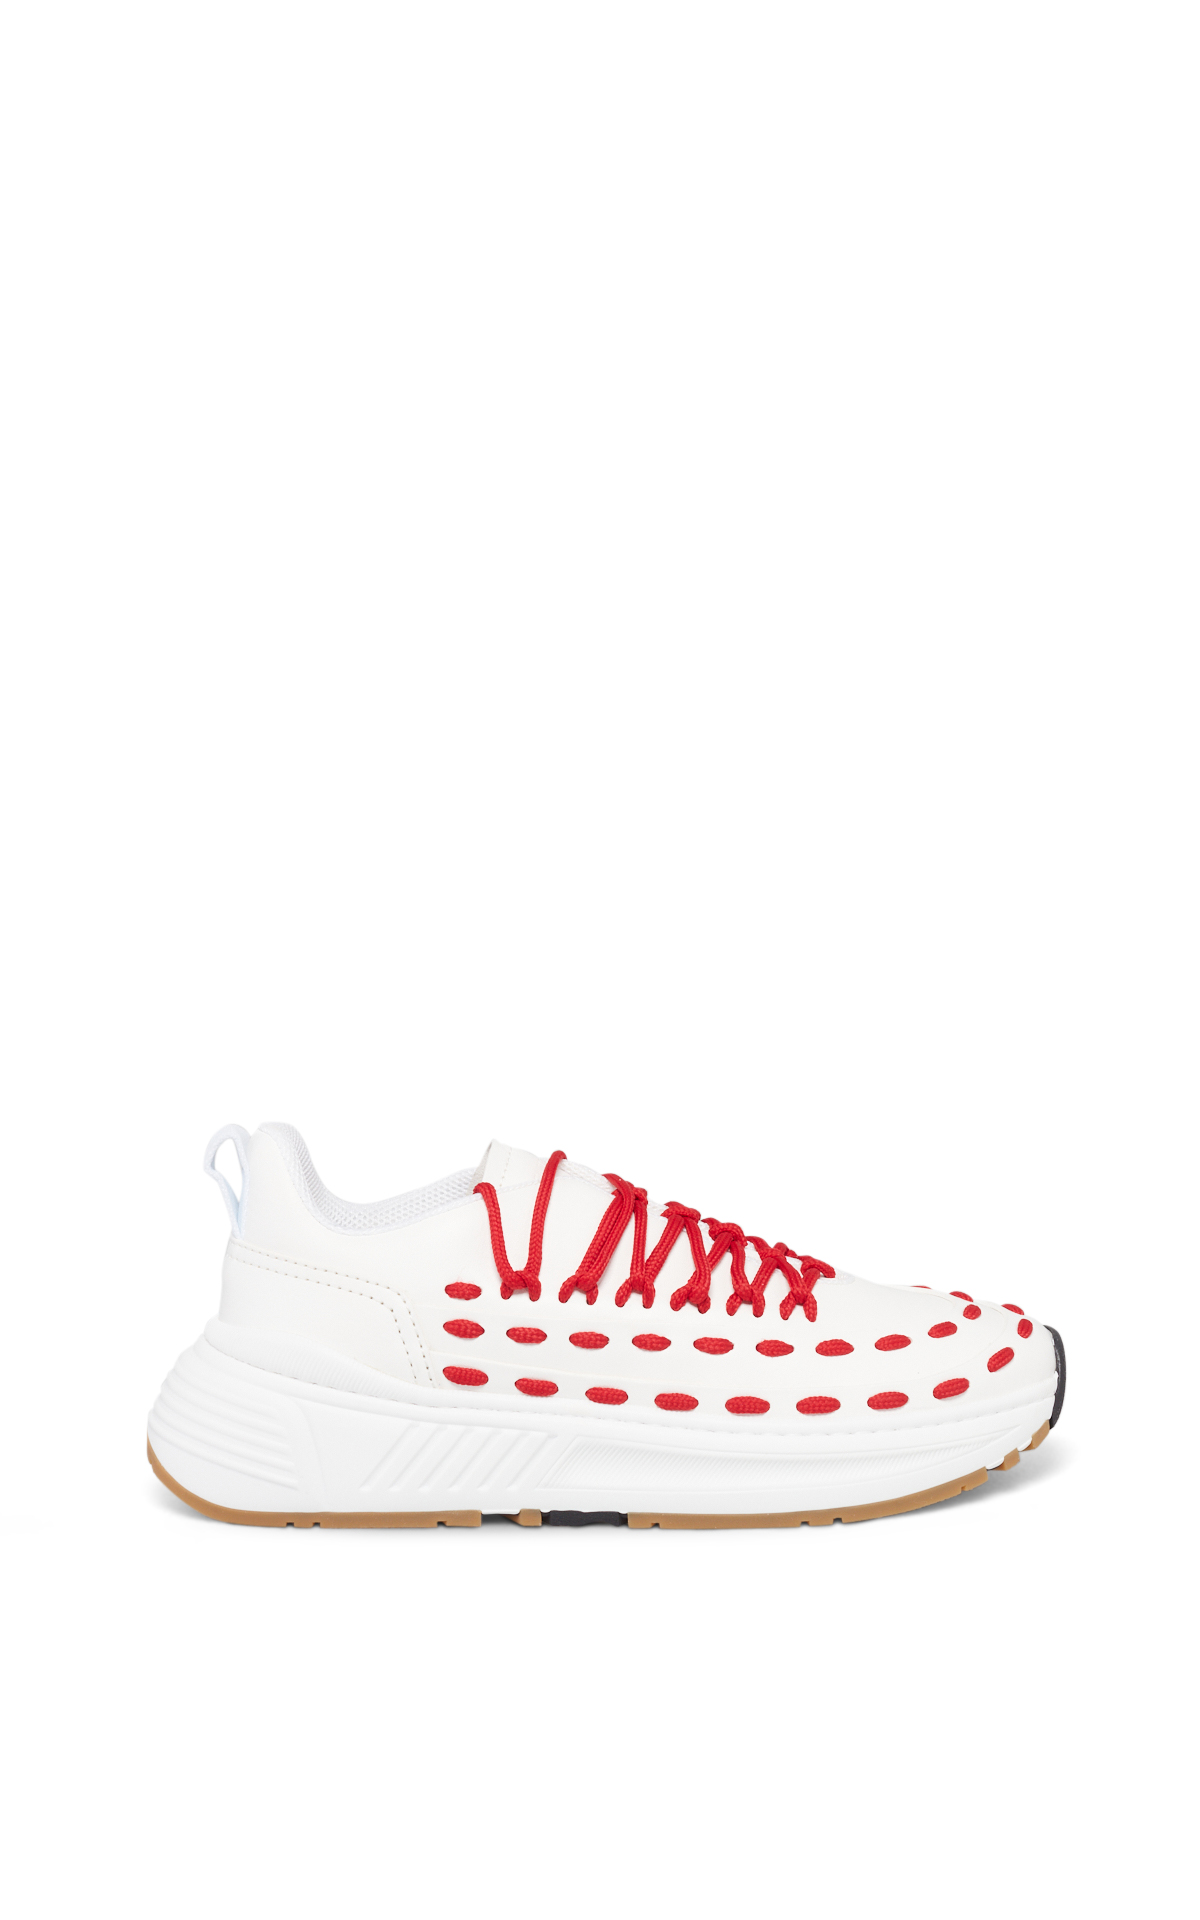 La Vallée Village Bottega Veneta White and red sneakers